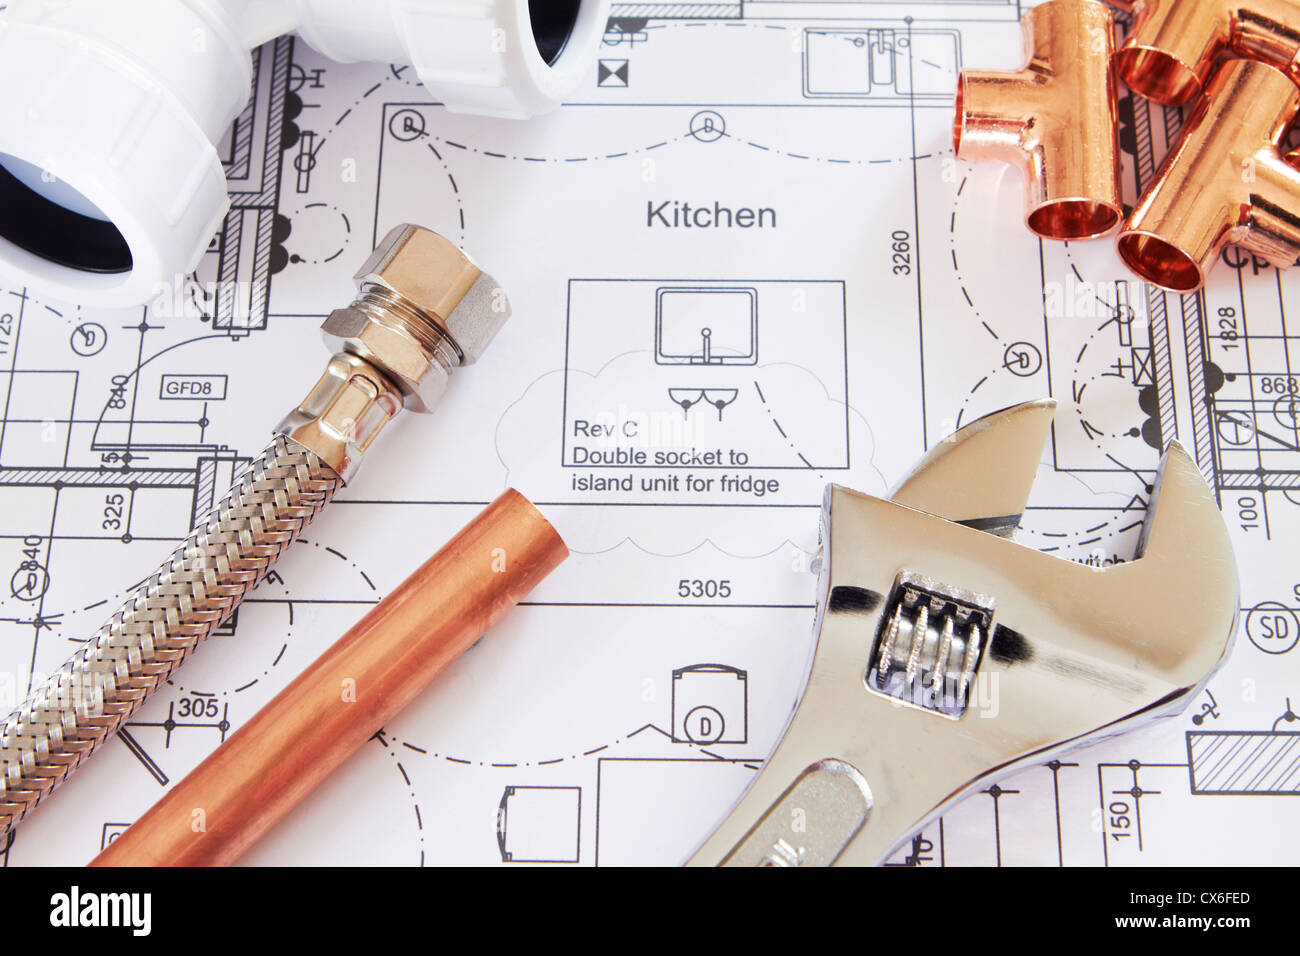 Selection Of Plumbing Equipment On House Plans - Stock Image